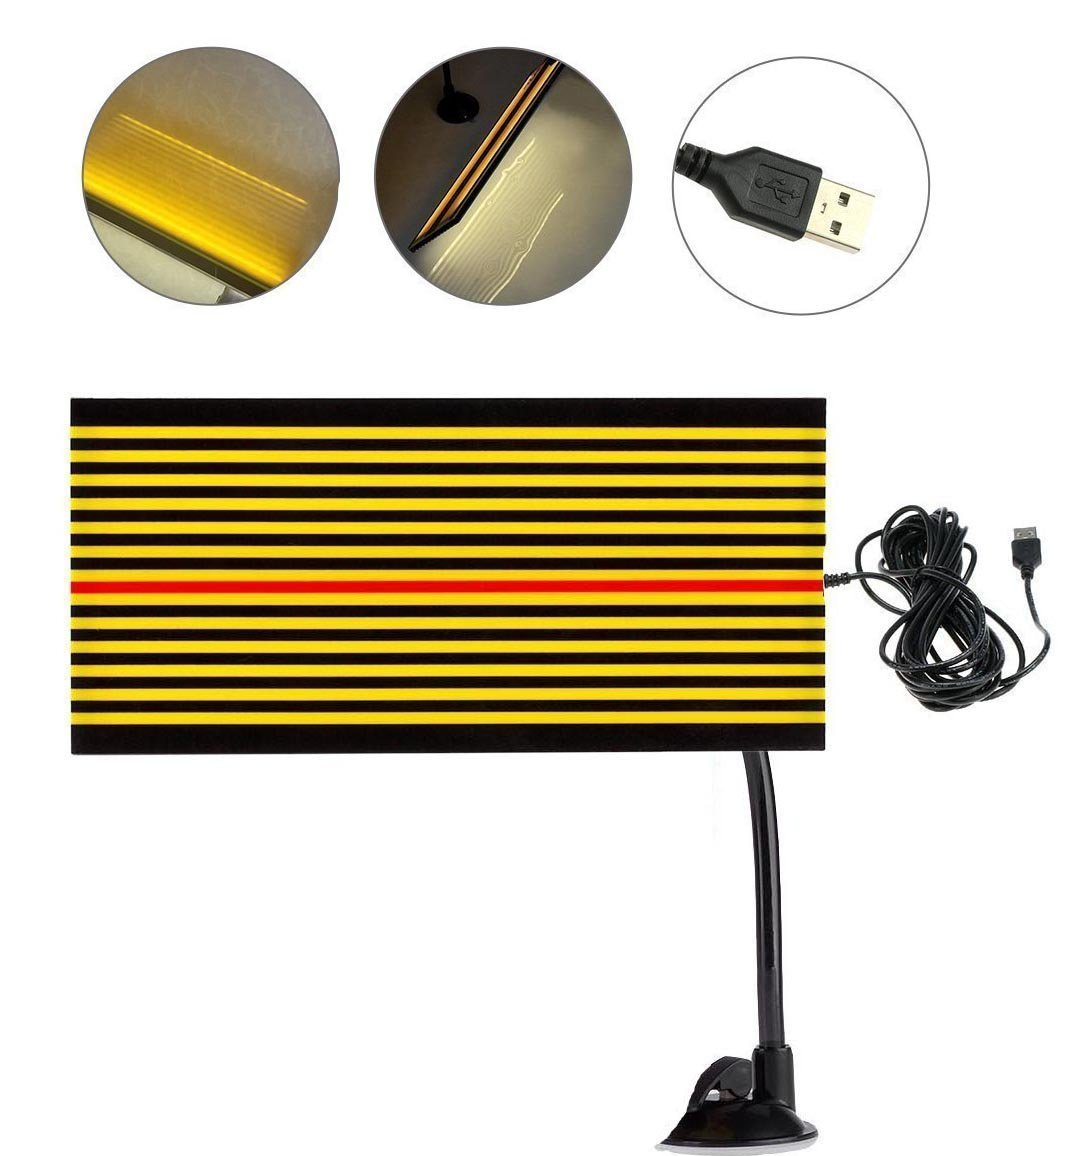 GS PDR Led Reflector Stripe Line Board Paintless Dent Removal Repair Tools with 5m Long USB Cable and Ajustment Holder Yellow light